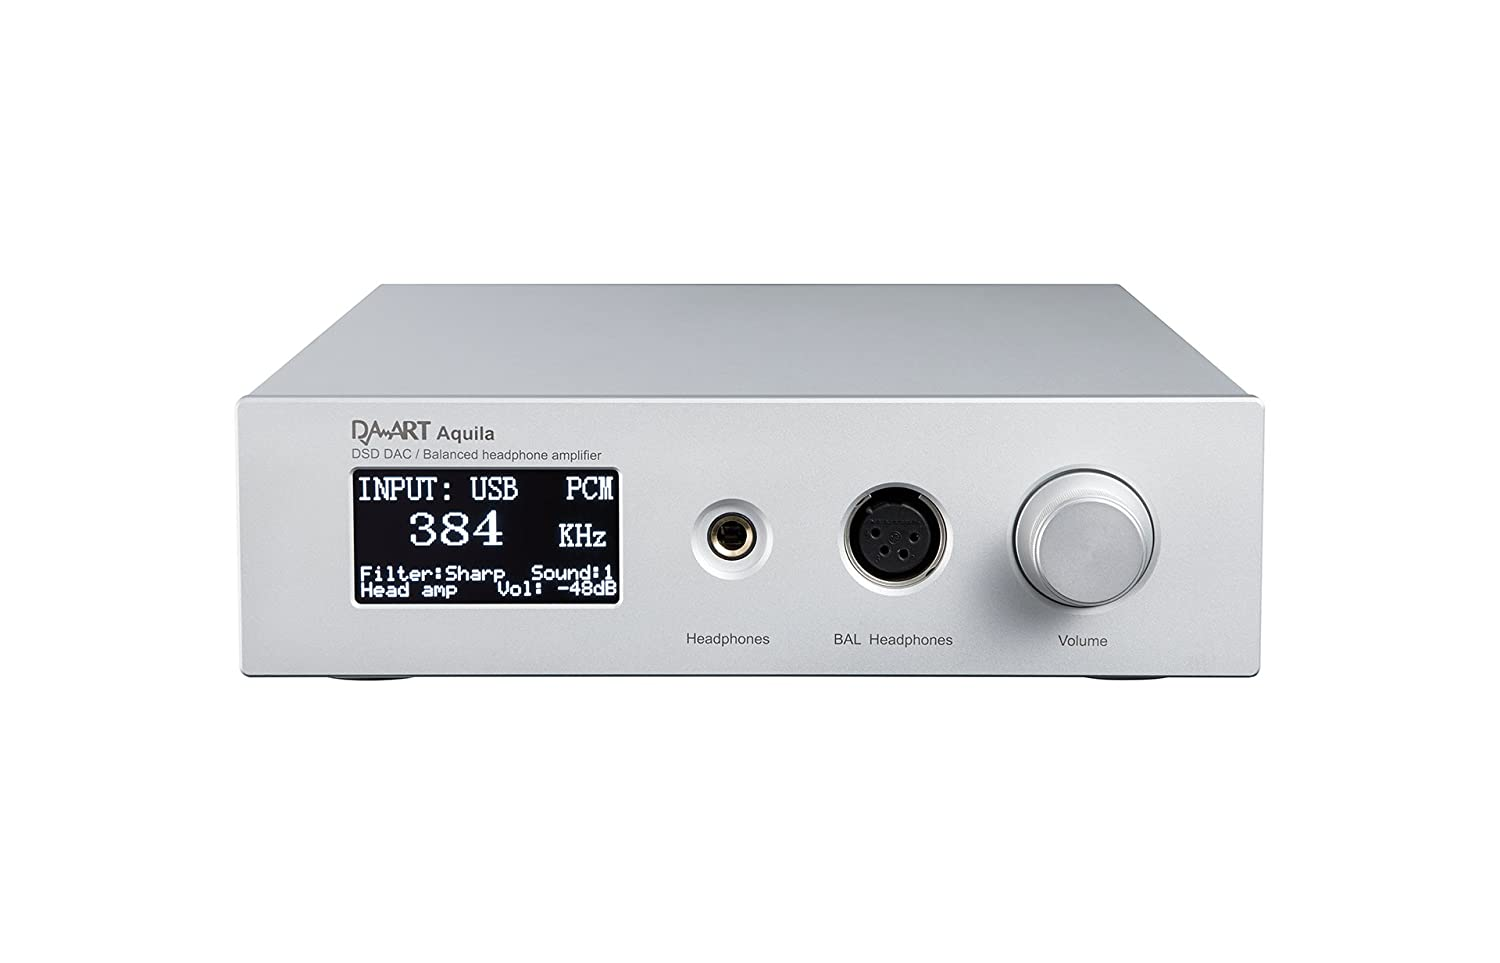 Hifi Decoder Amplifier Yulong Audio Daart Aquila 500k Usb Dac Headphone Amp With Easy To Use Digital Volume Control Ebay Ak4497 Dsd Dop128 Pcm384k Silver Cell Phones Accessories